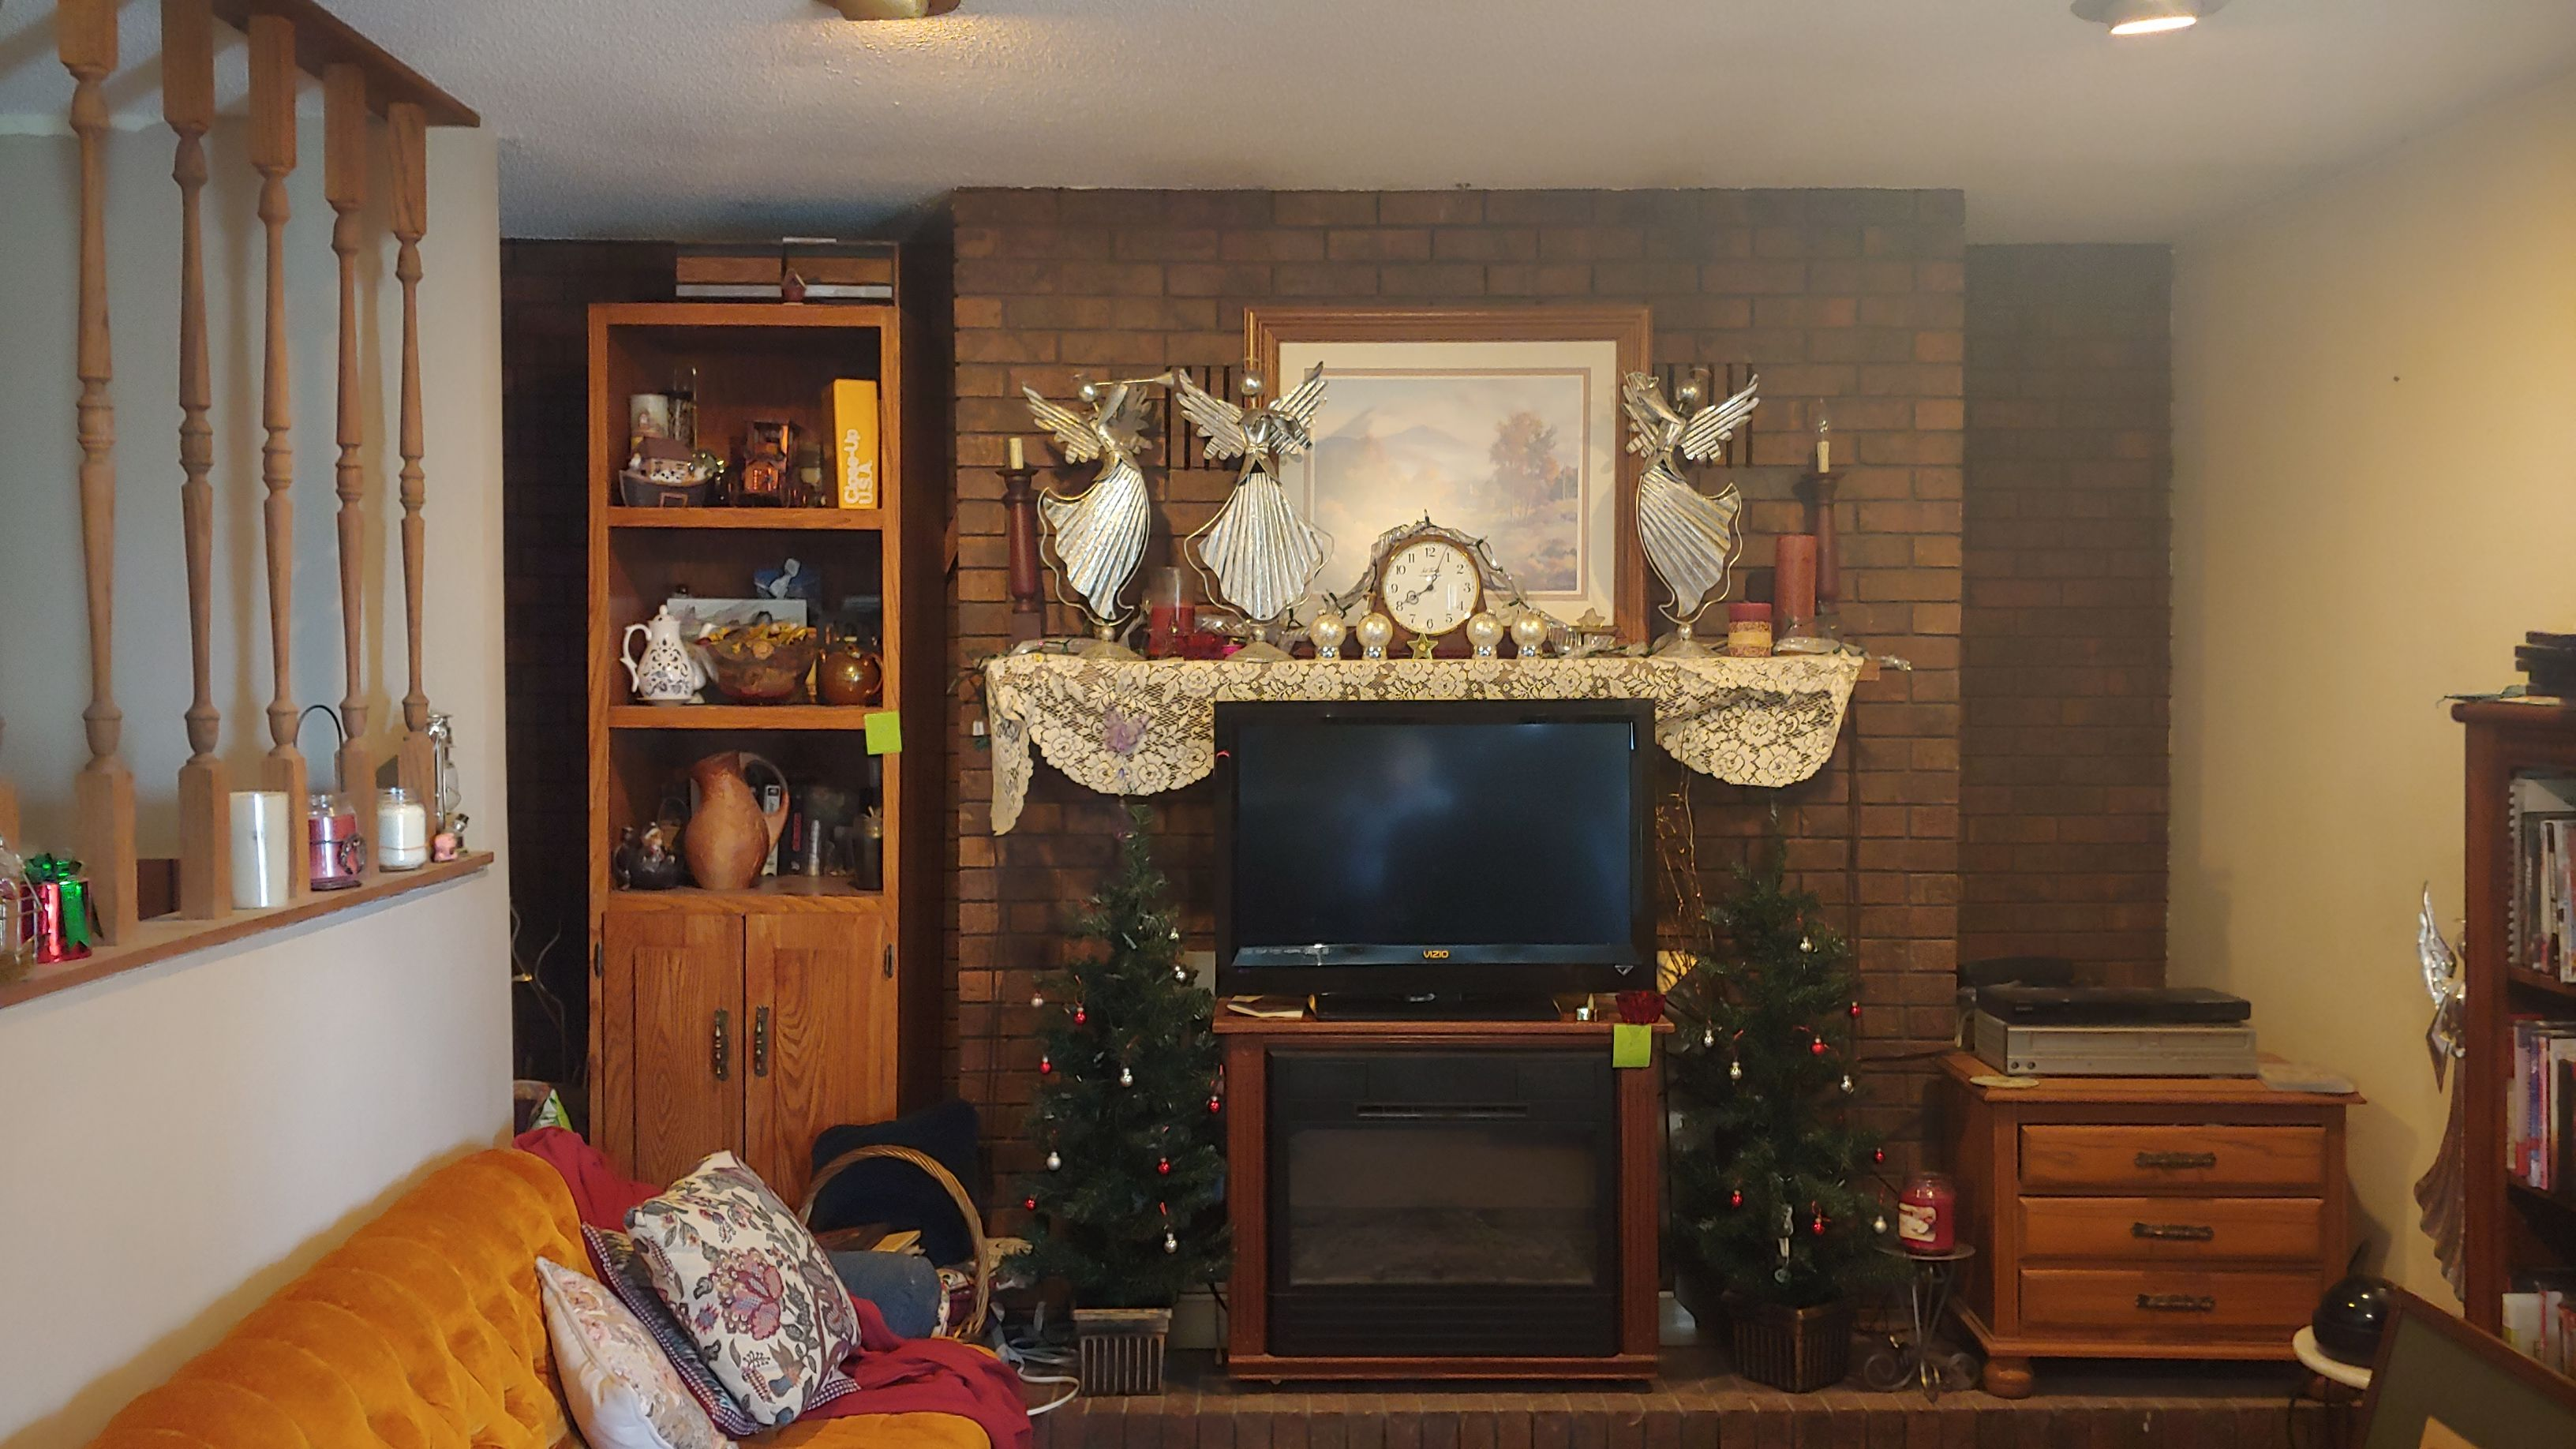 Item 13 in Real Estate and Personal Property Auction gallery